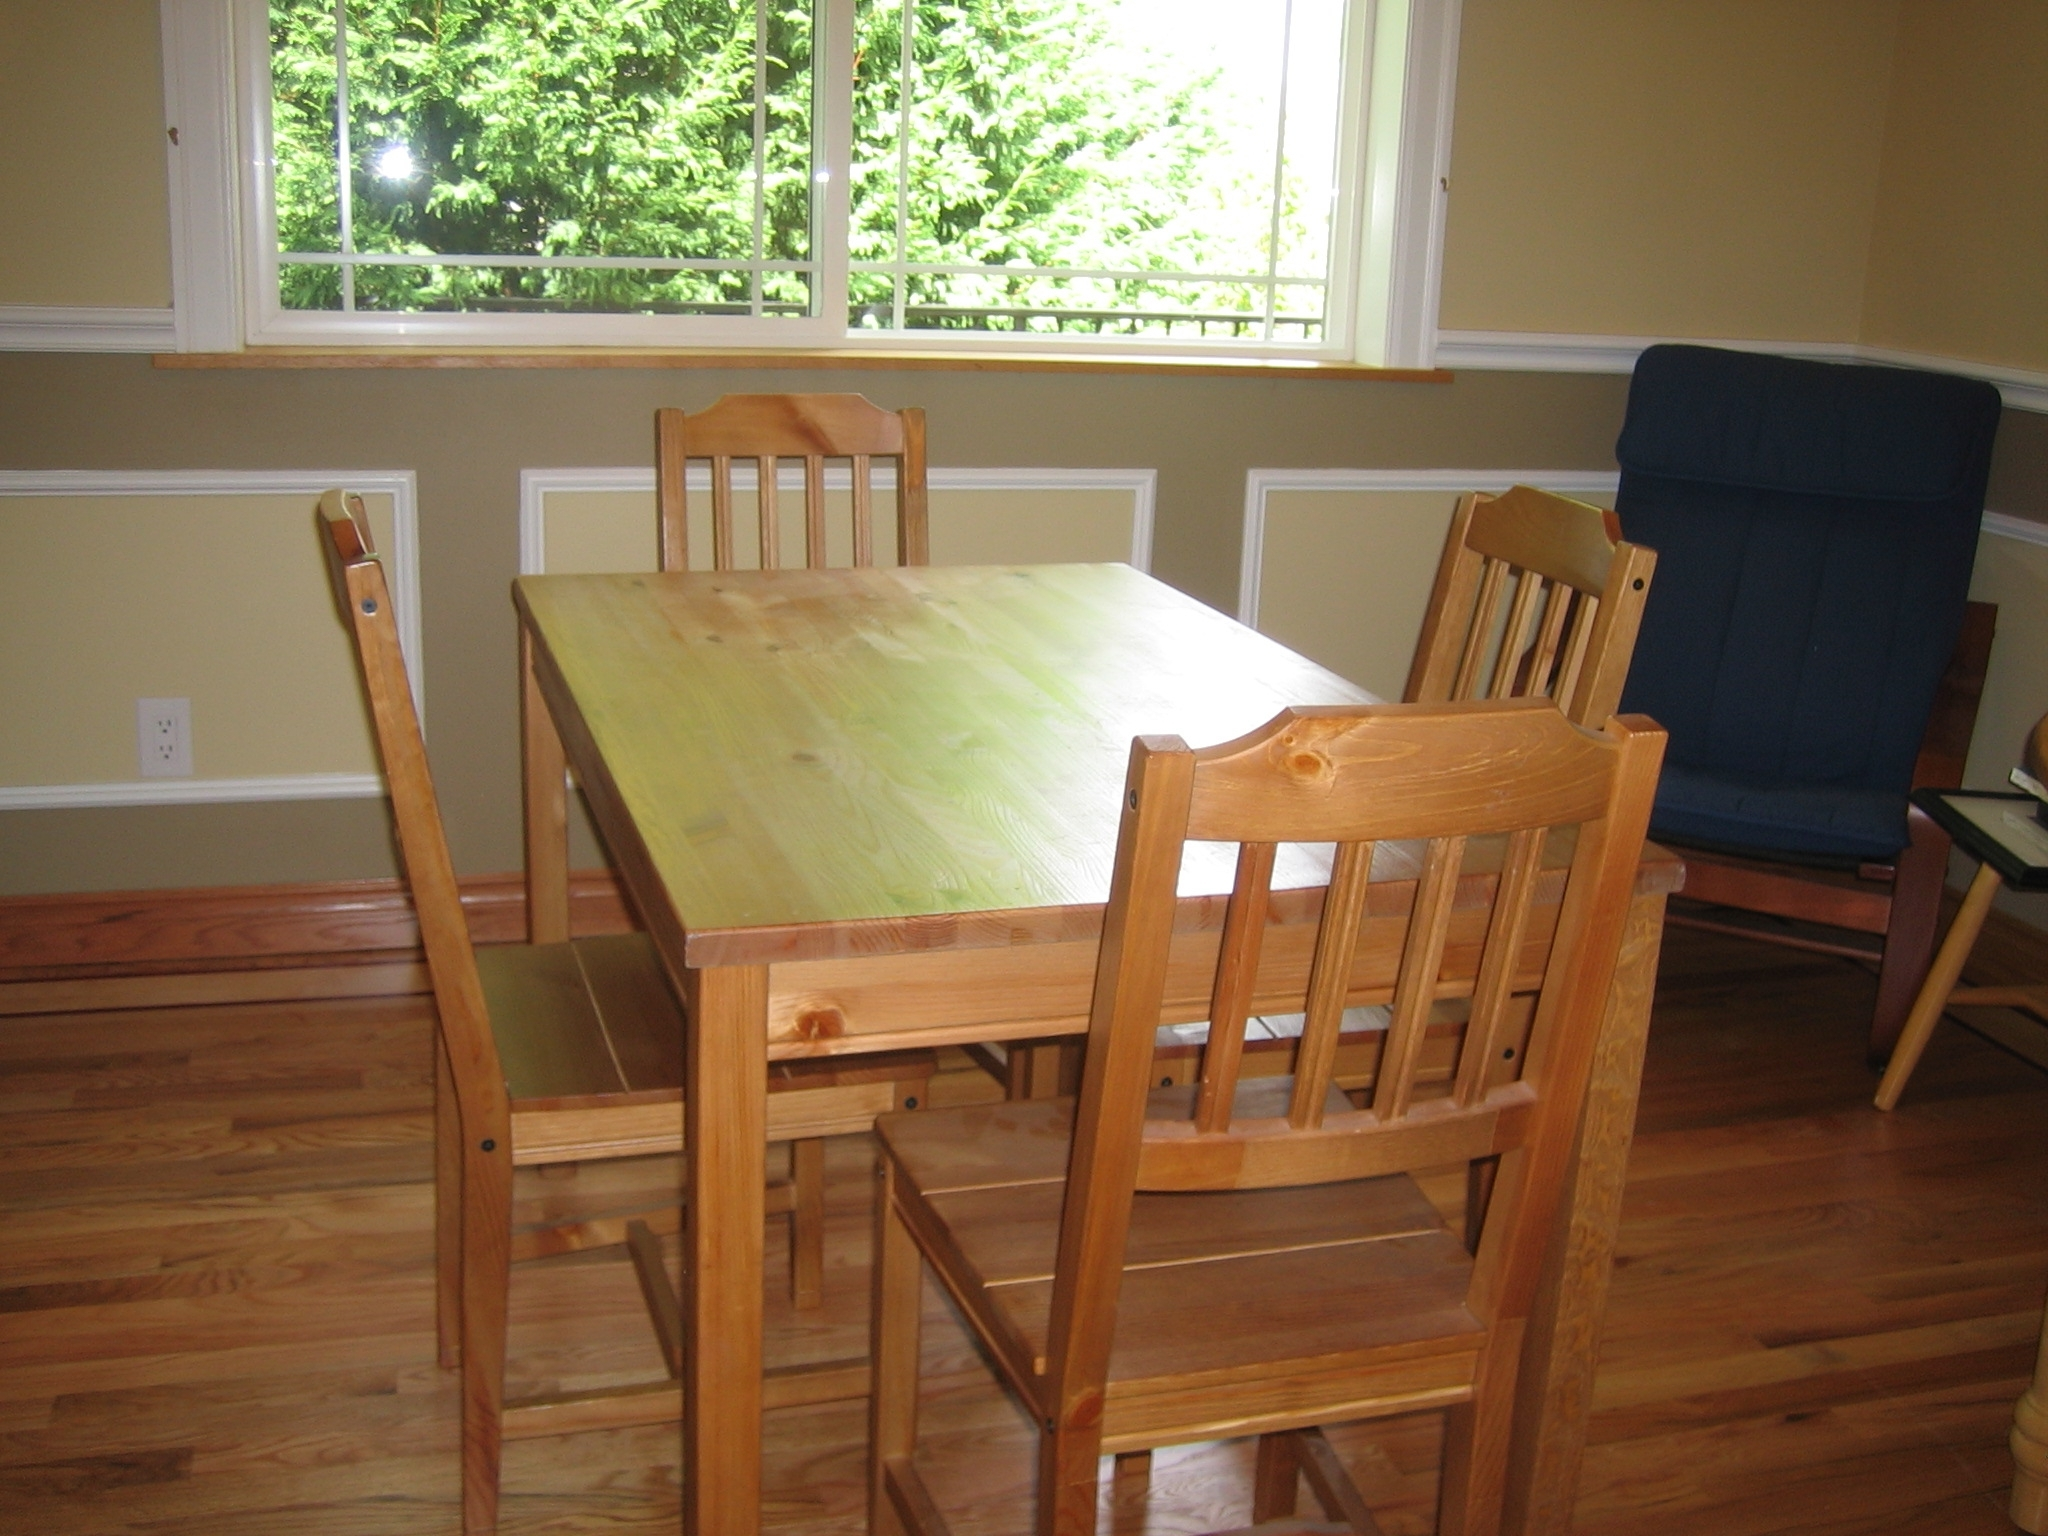 File:kitchen Table – Wikimedia Commons Throughout 2018 Non Wood Dining Tables (View 8 of 25)